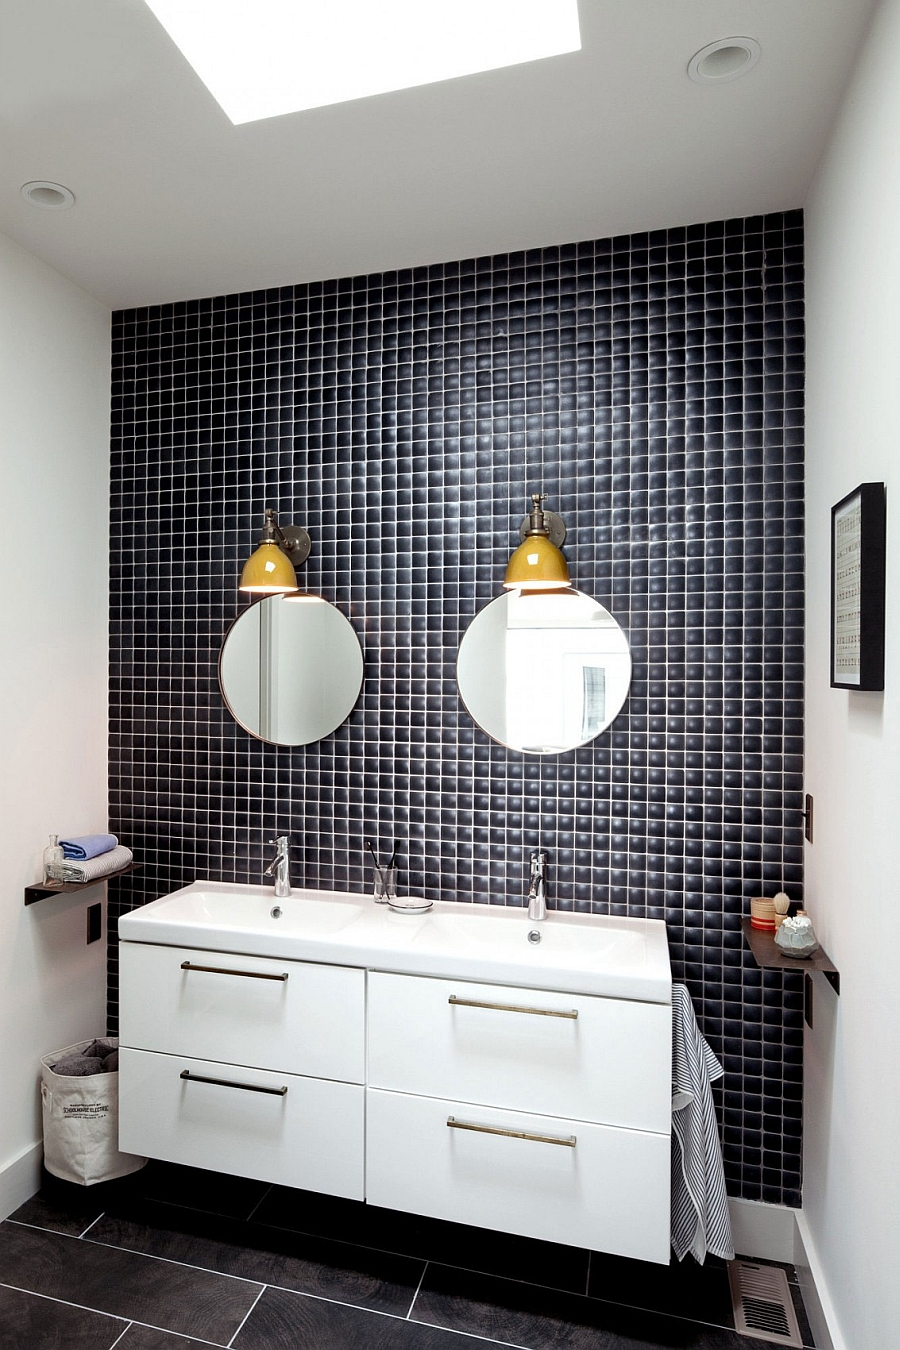 Yellow lighting fixtures bring color into the bathroom